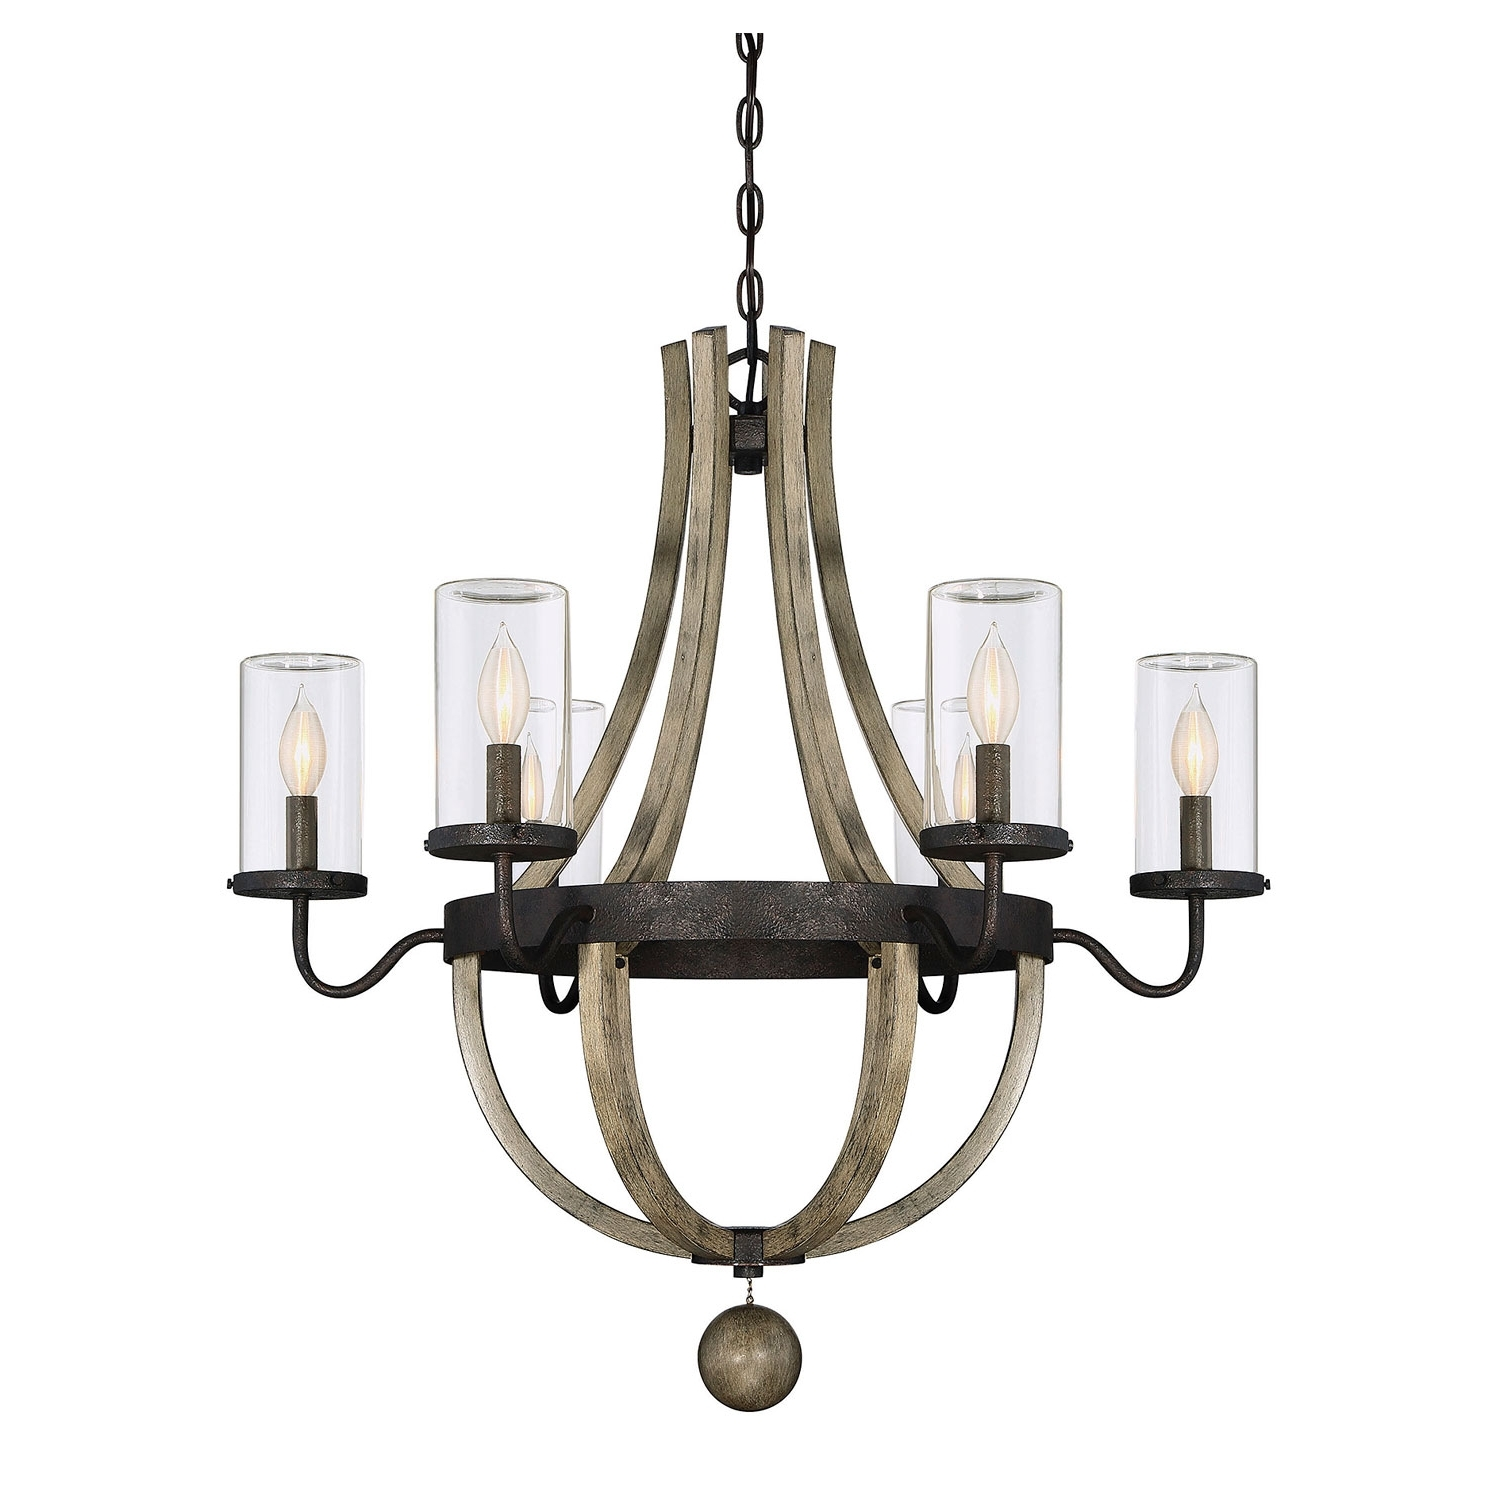 Big Outdoor Hanging Lights Throughout Current Outdoor Hanging Lights On Sale (View 6 of 20)